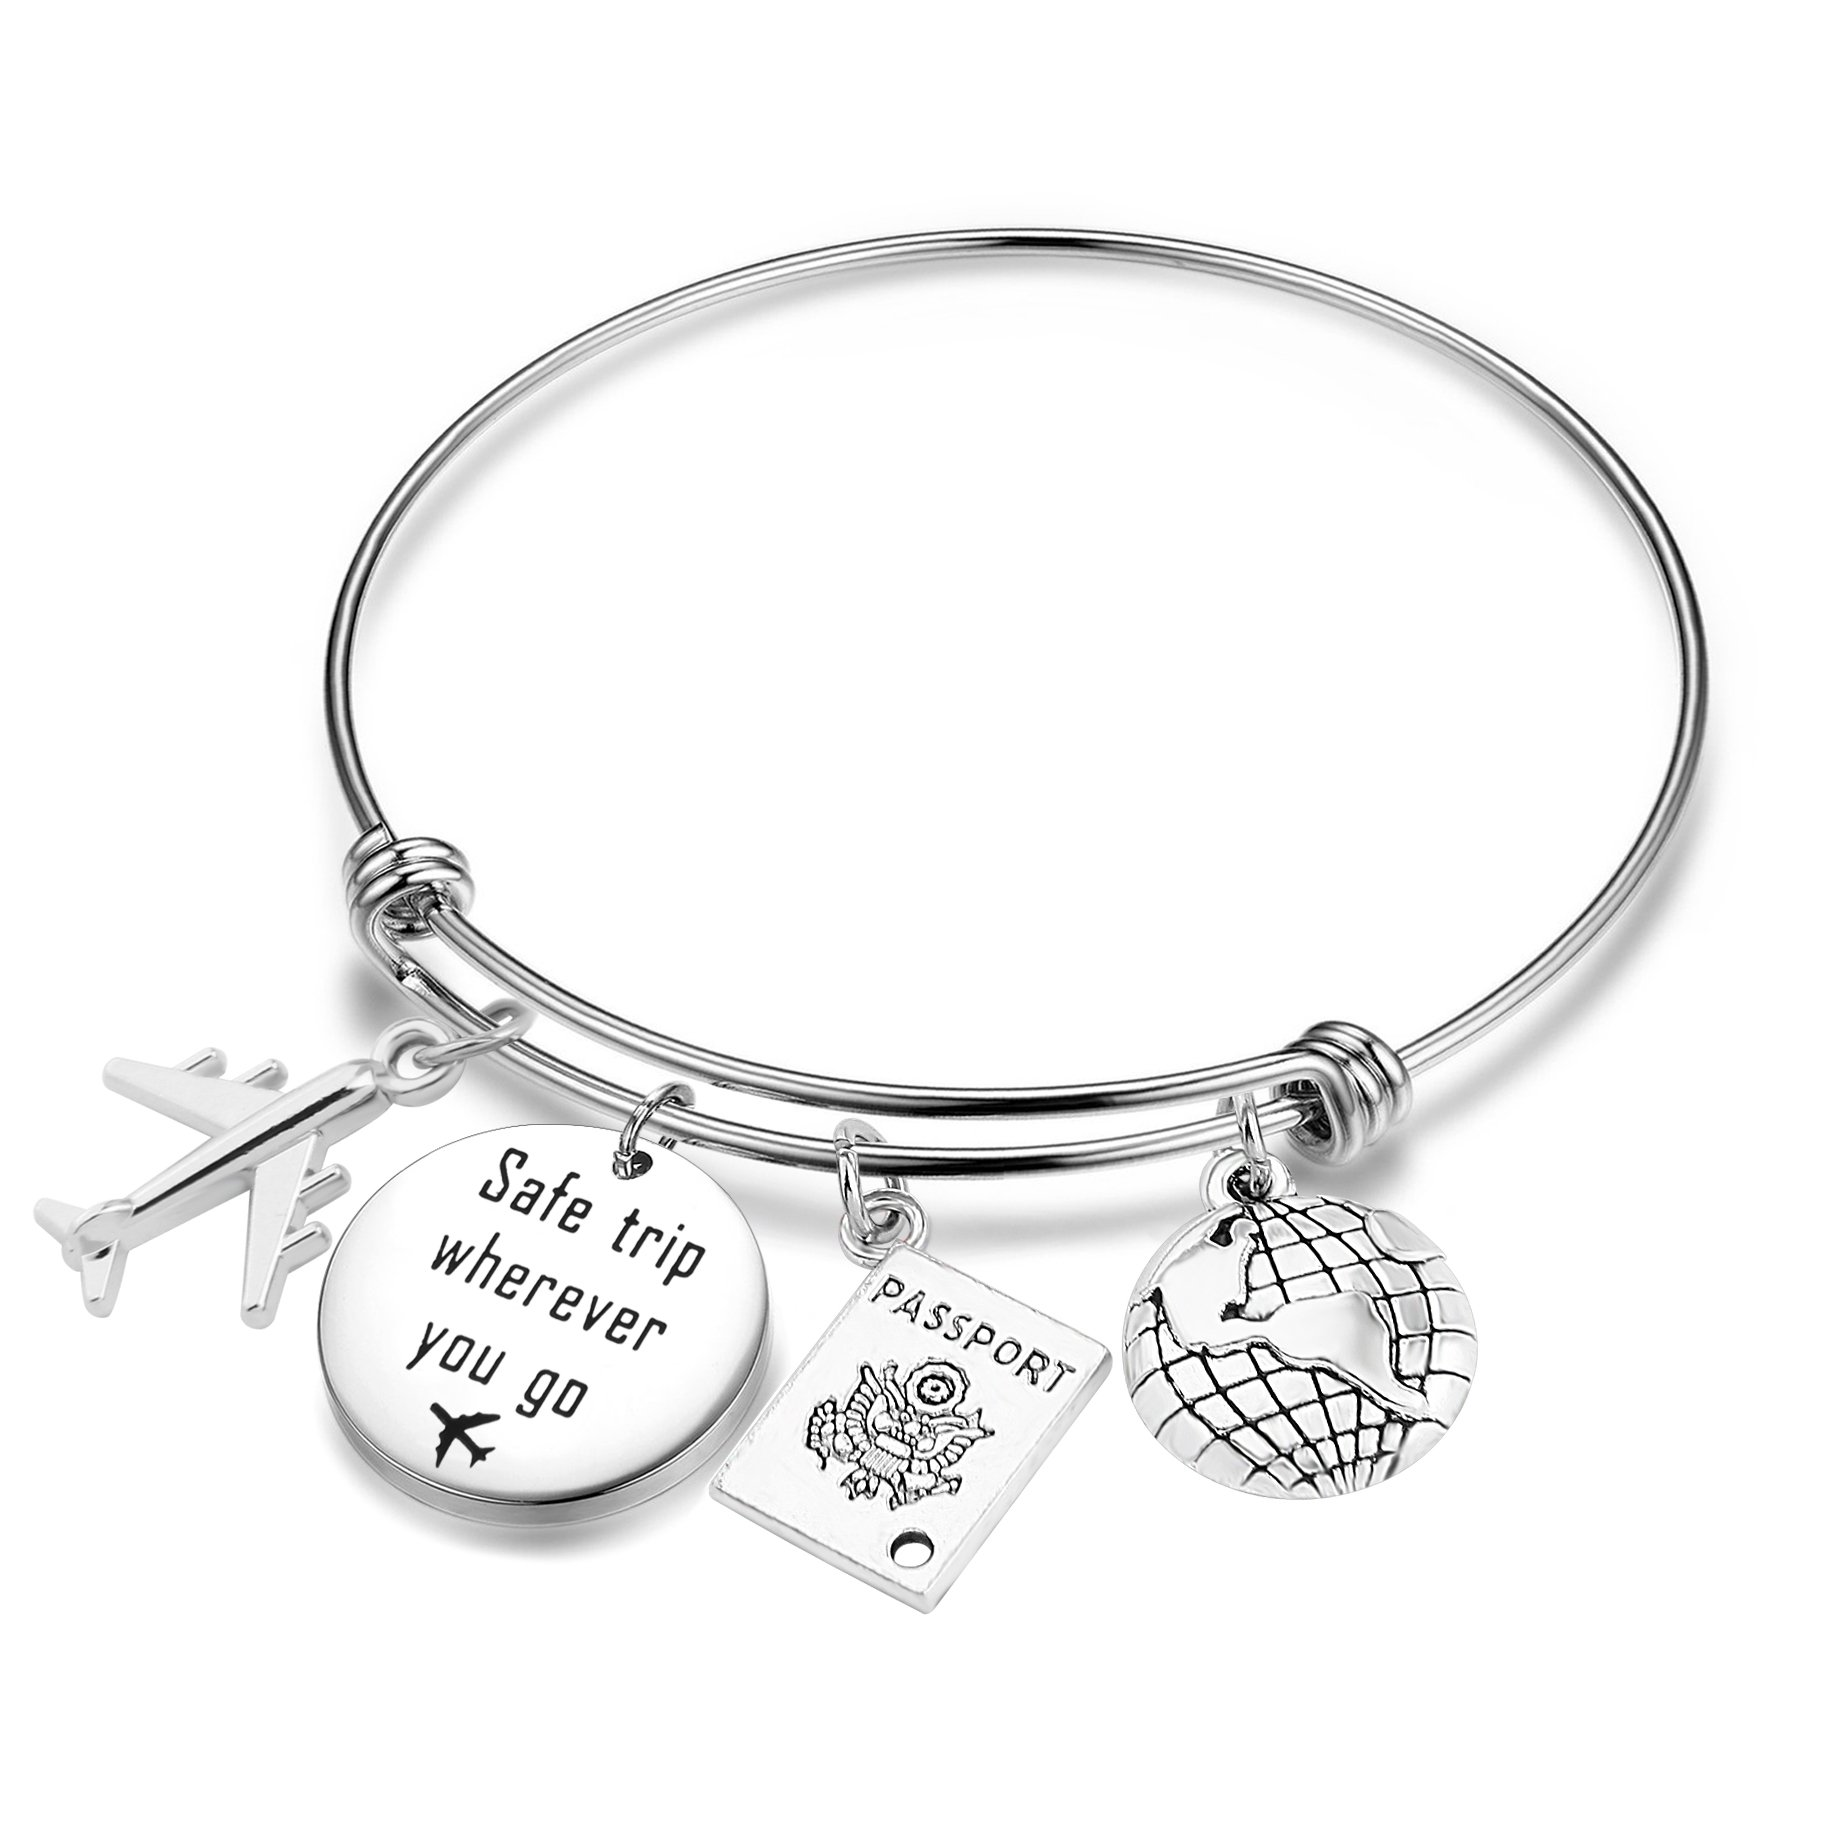 CHOROY Safe Travels Bracelet Airplane Bracelet Safe Trip Wherever You Go Charm Bangle Aviation Jewelry Gift For Pilot/Flight Attendant (Safe trip bangle)